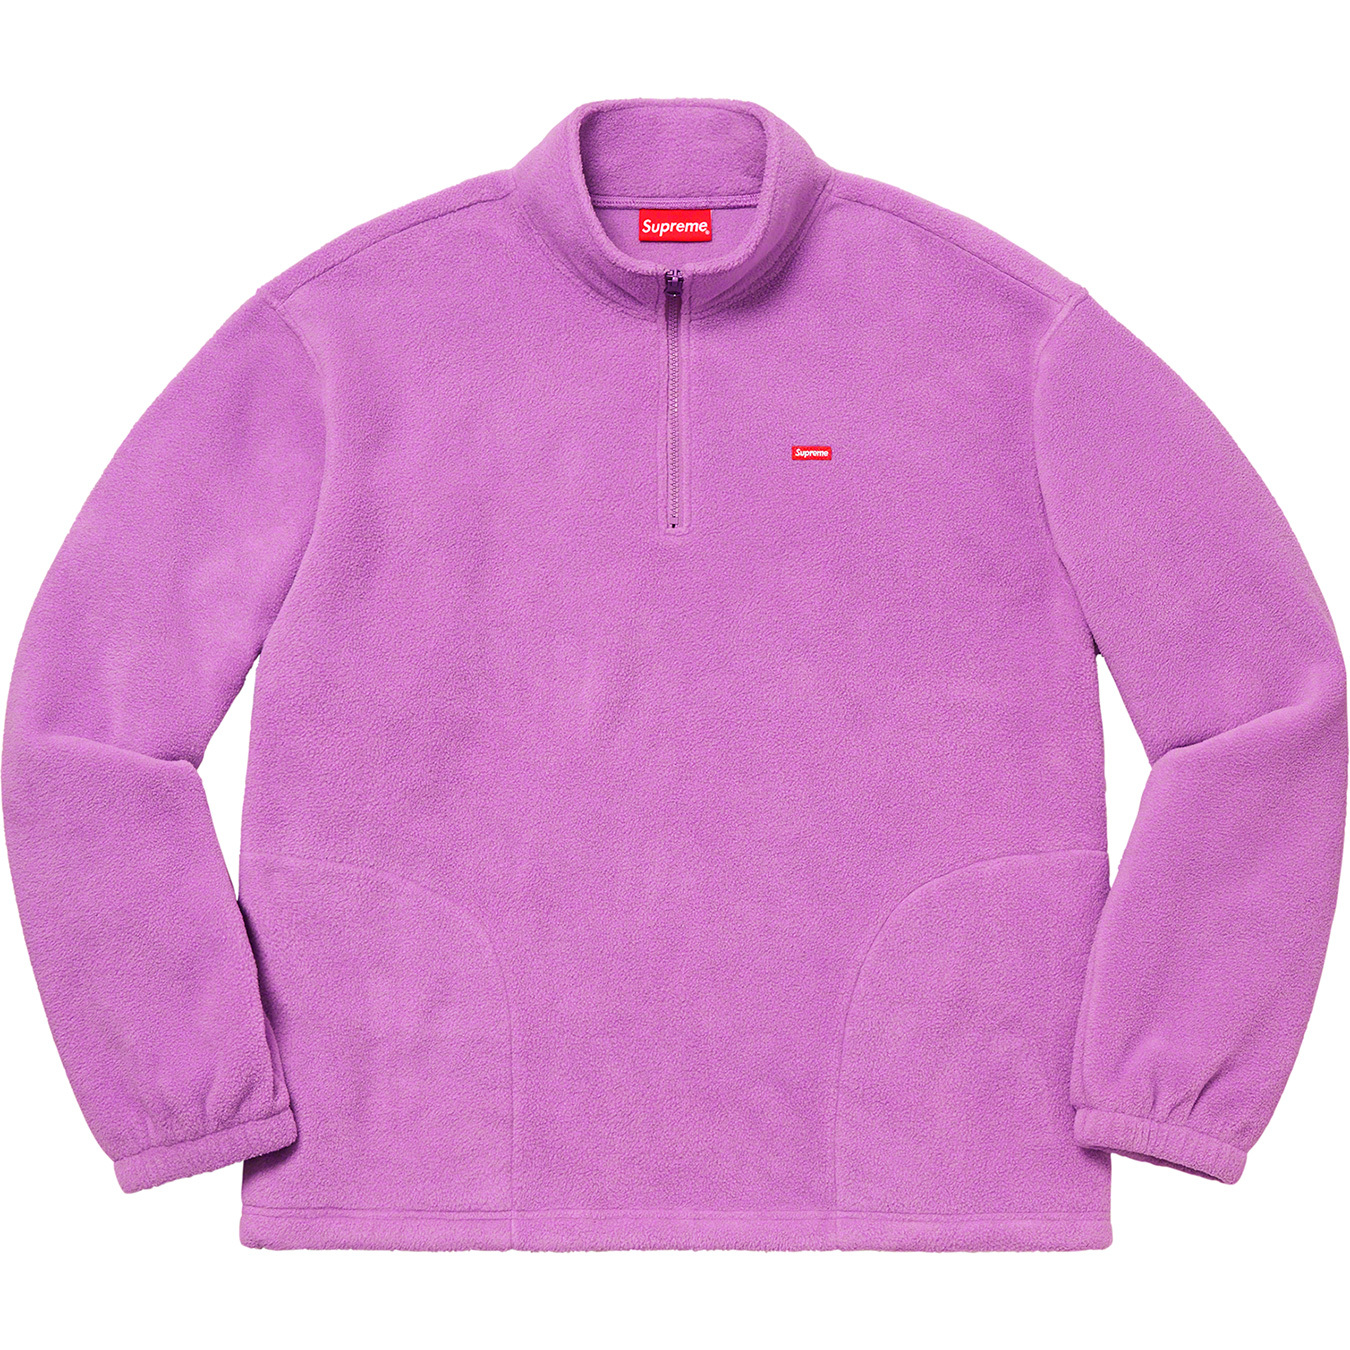 supreme-19aw-19fw-fall-winter-polartec-half-zip-pullover